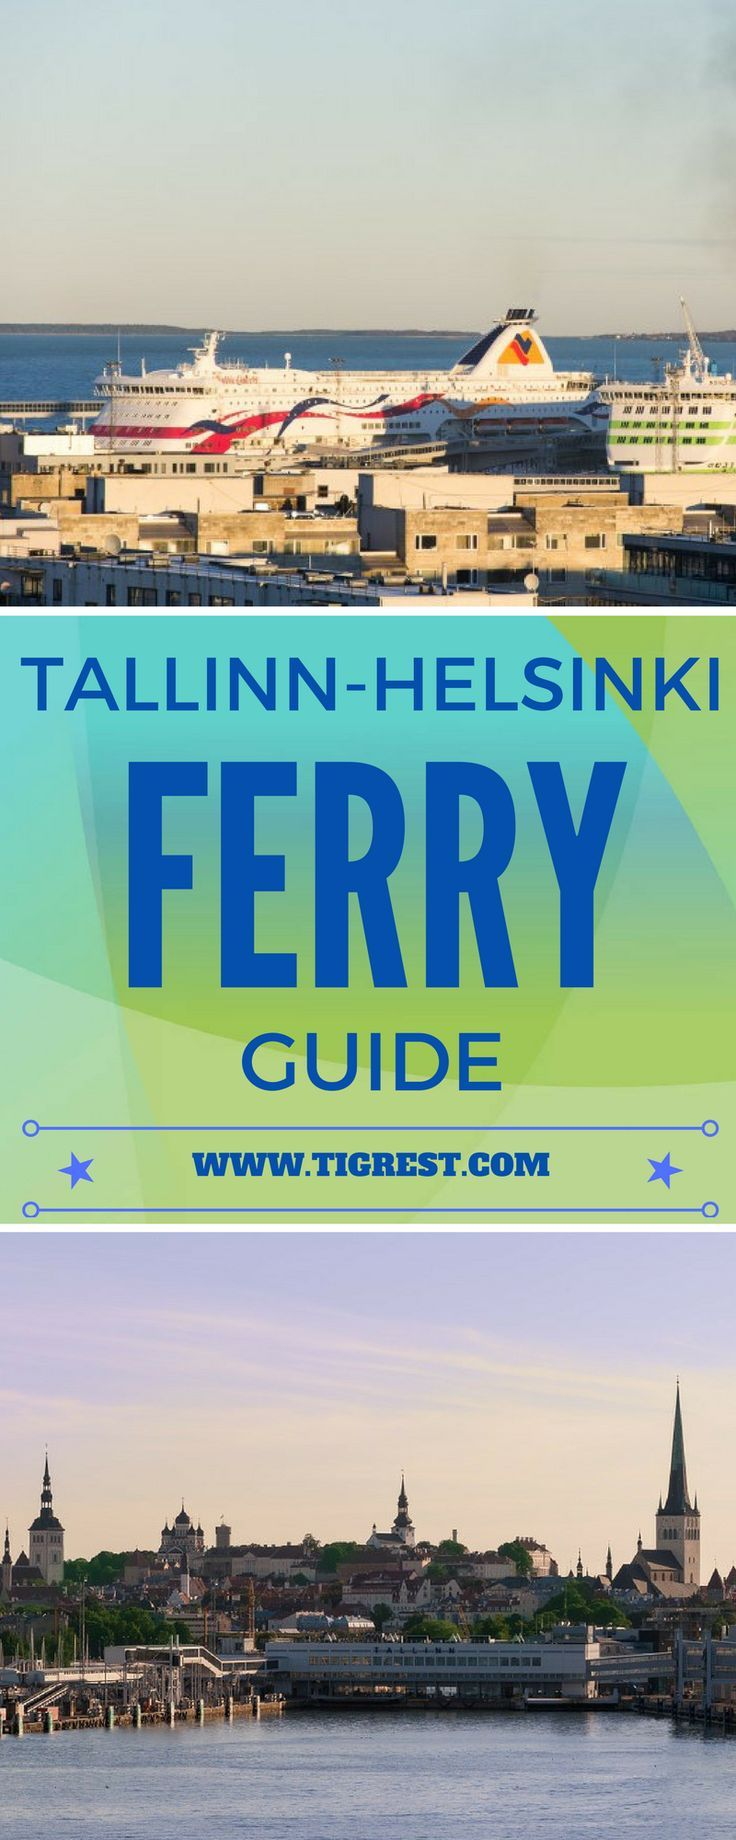 Ferry Tallinn-Helsinki - the easiest way to get from one capital to the other. Find out how to book, how much are the tickets and much more